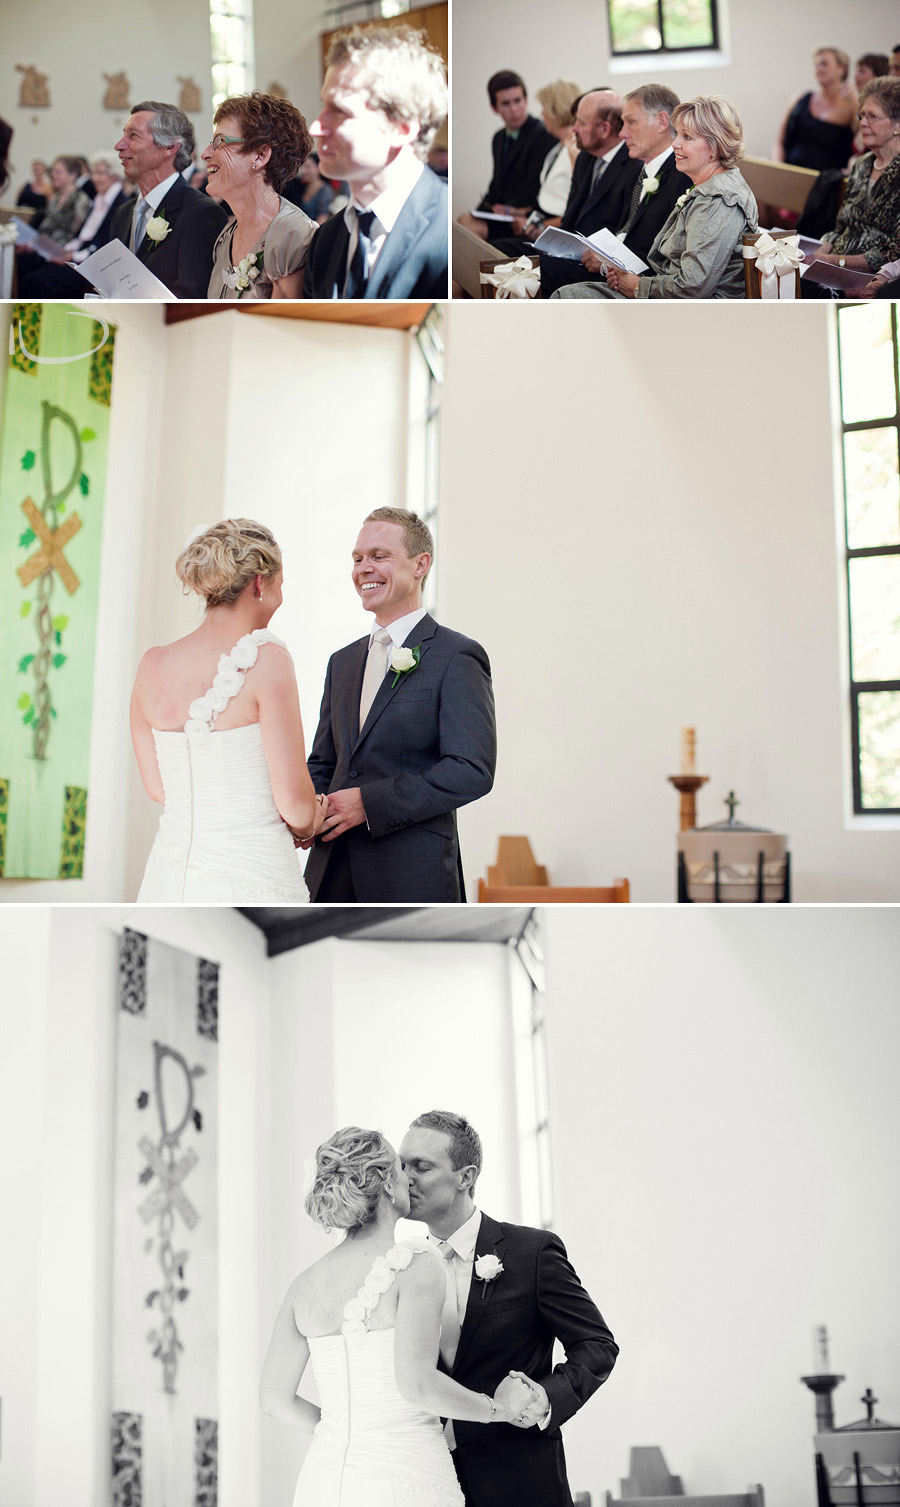 Duntroon Chapel Wedding Photographer: First kiss